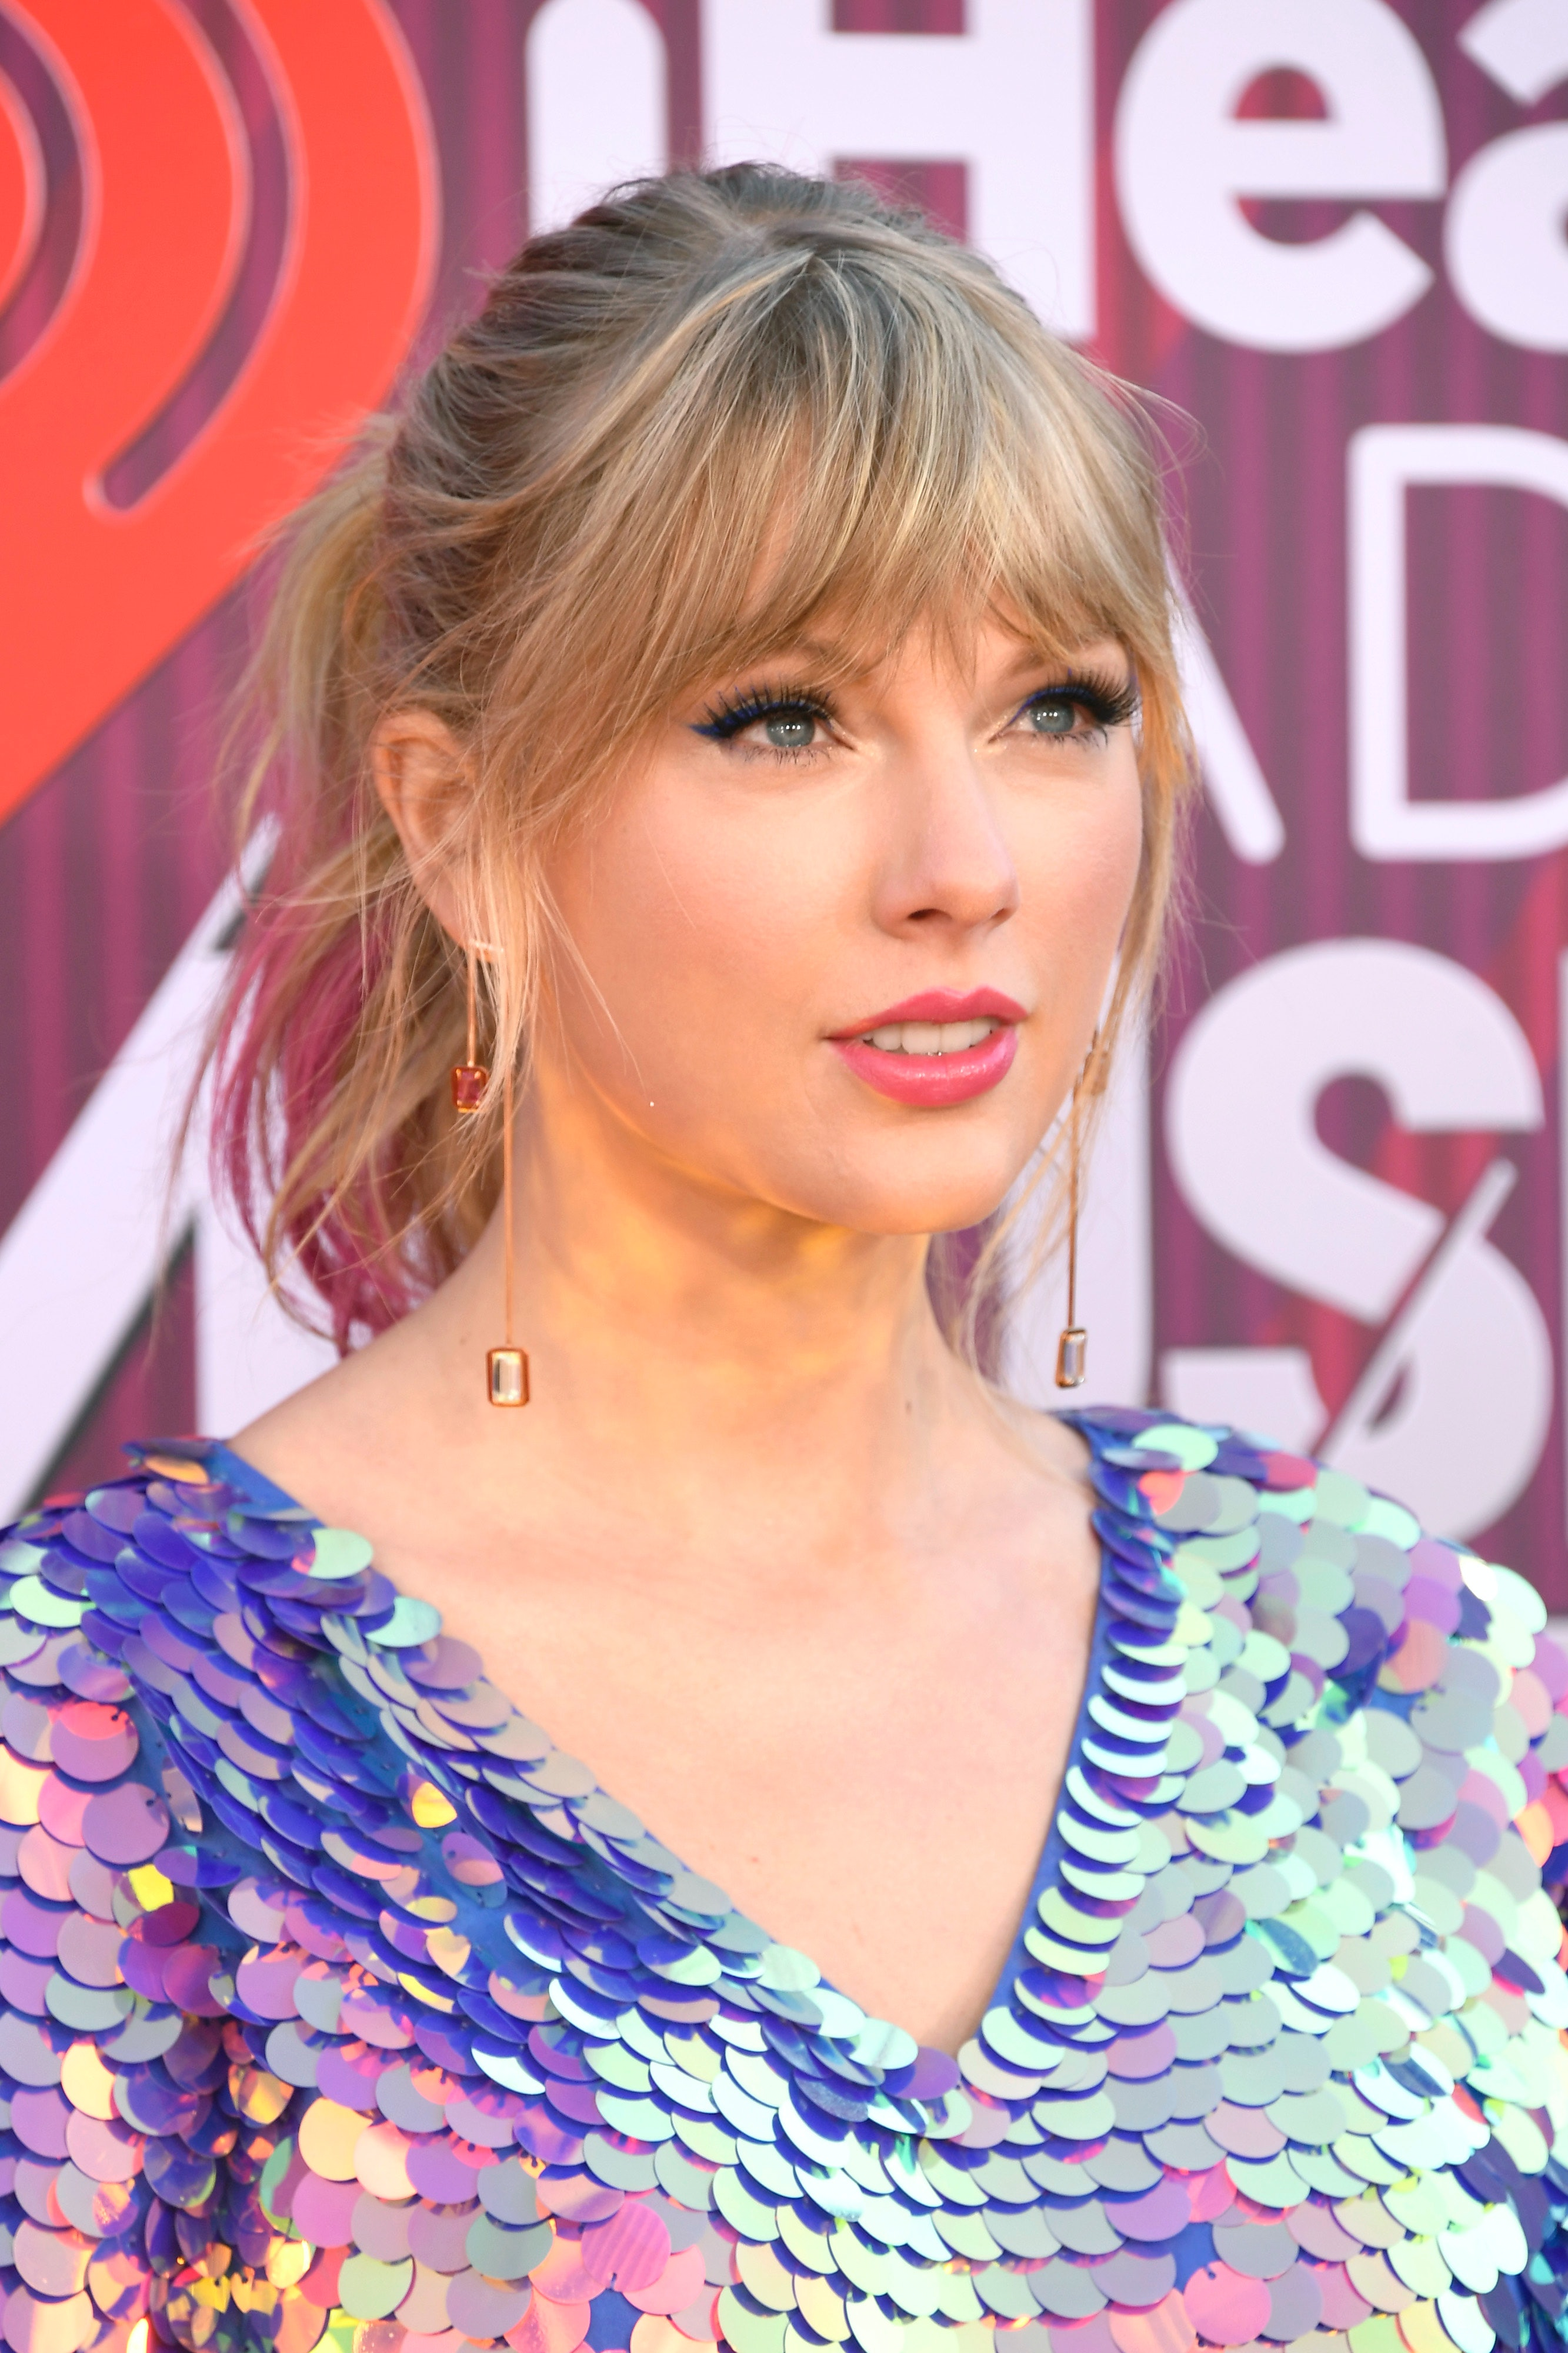 Taylor Swift Has Dip-Dyed Pink Hair Now & You Probably Missed It